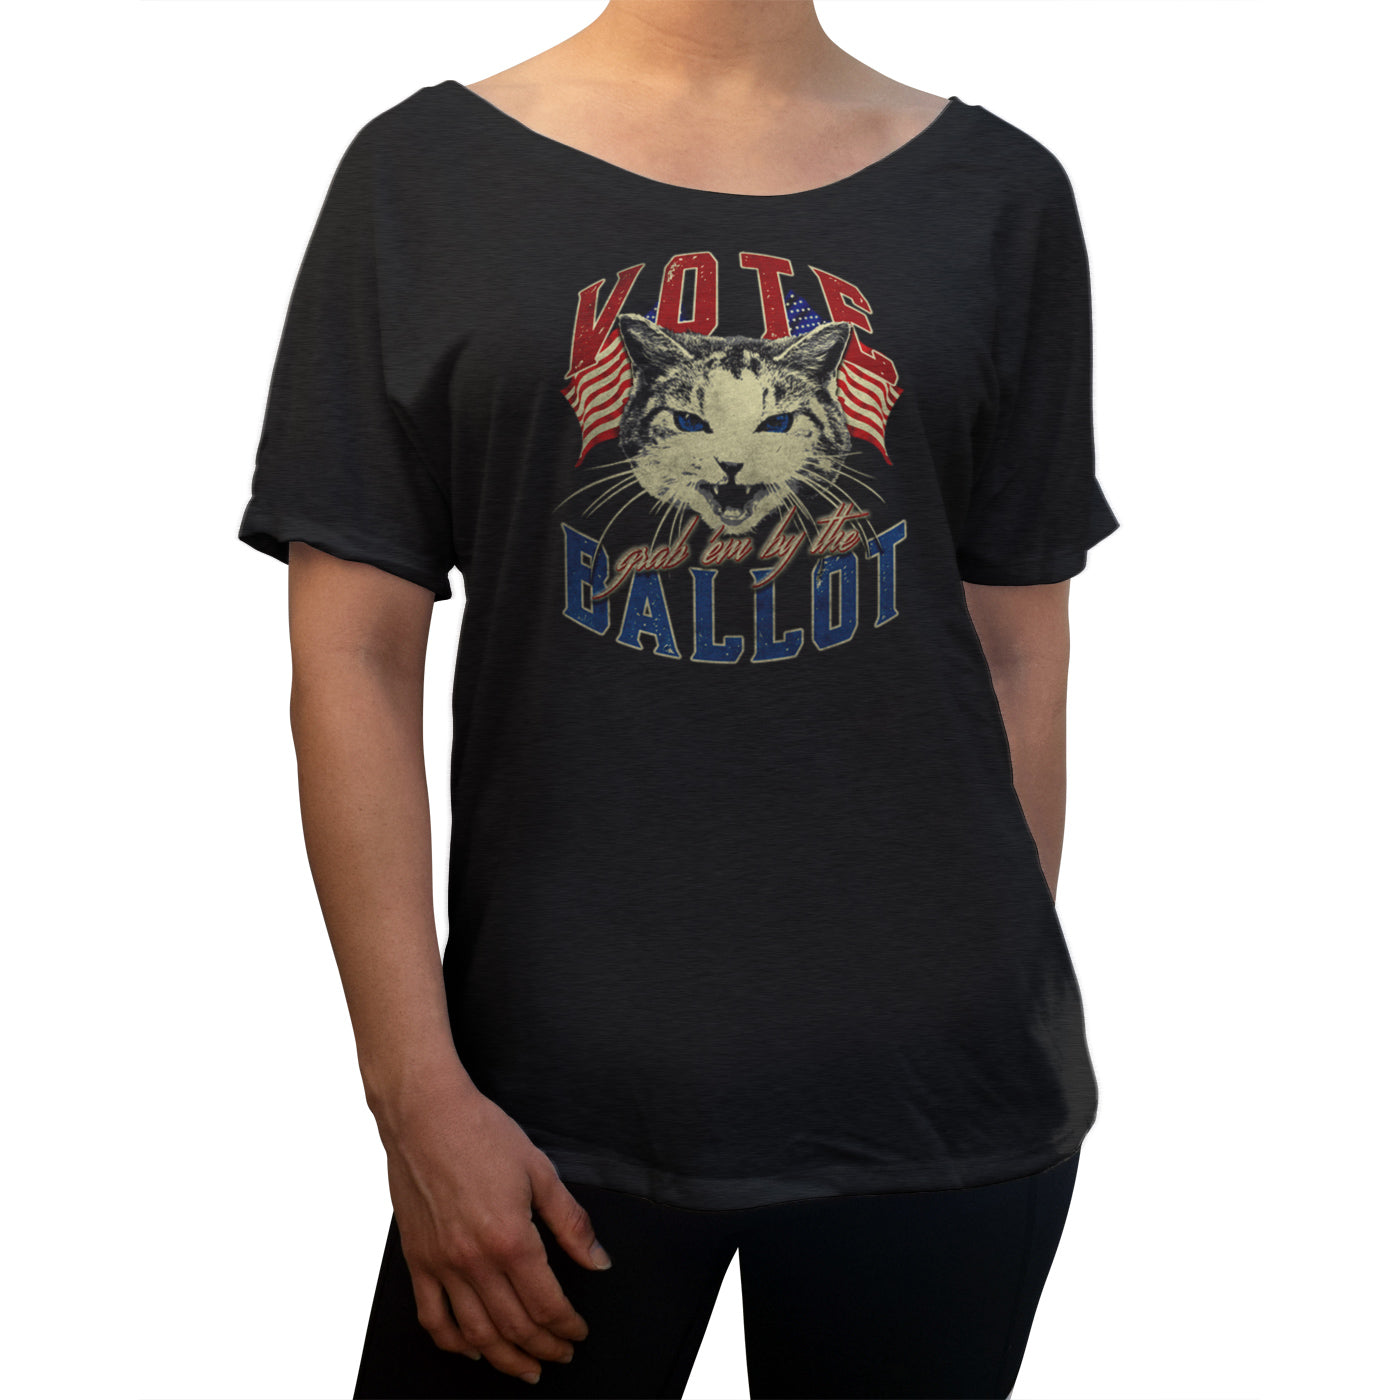 Women's Vote! Grab Em By The Ballot Election Cat Scoop Neck T-Shirt